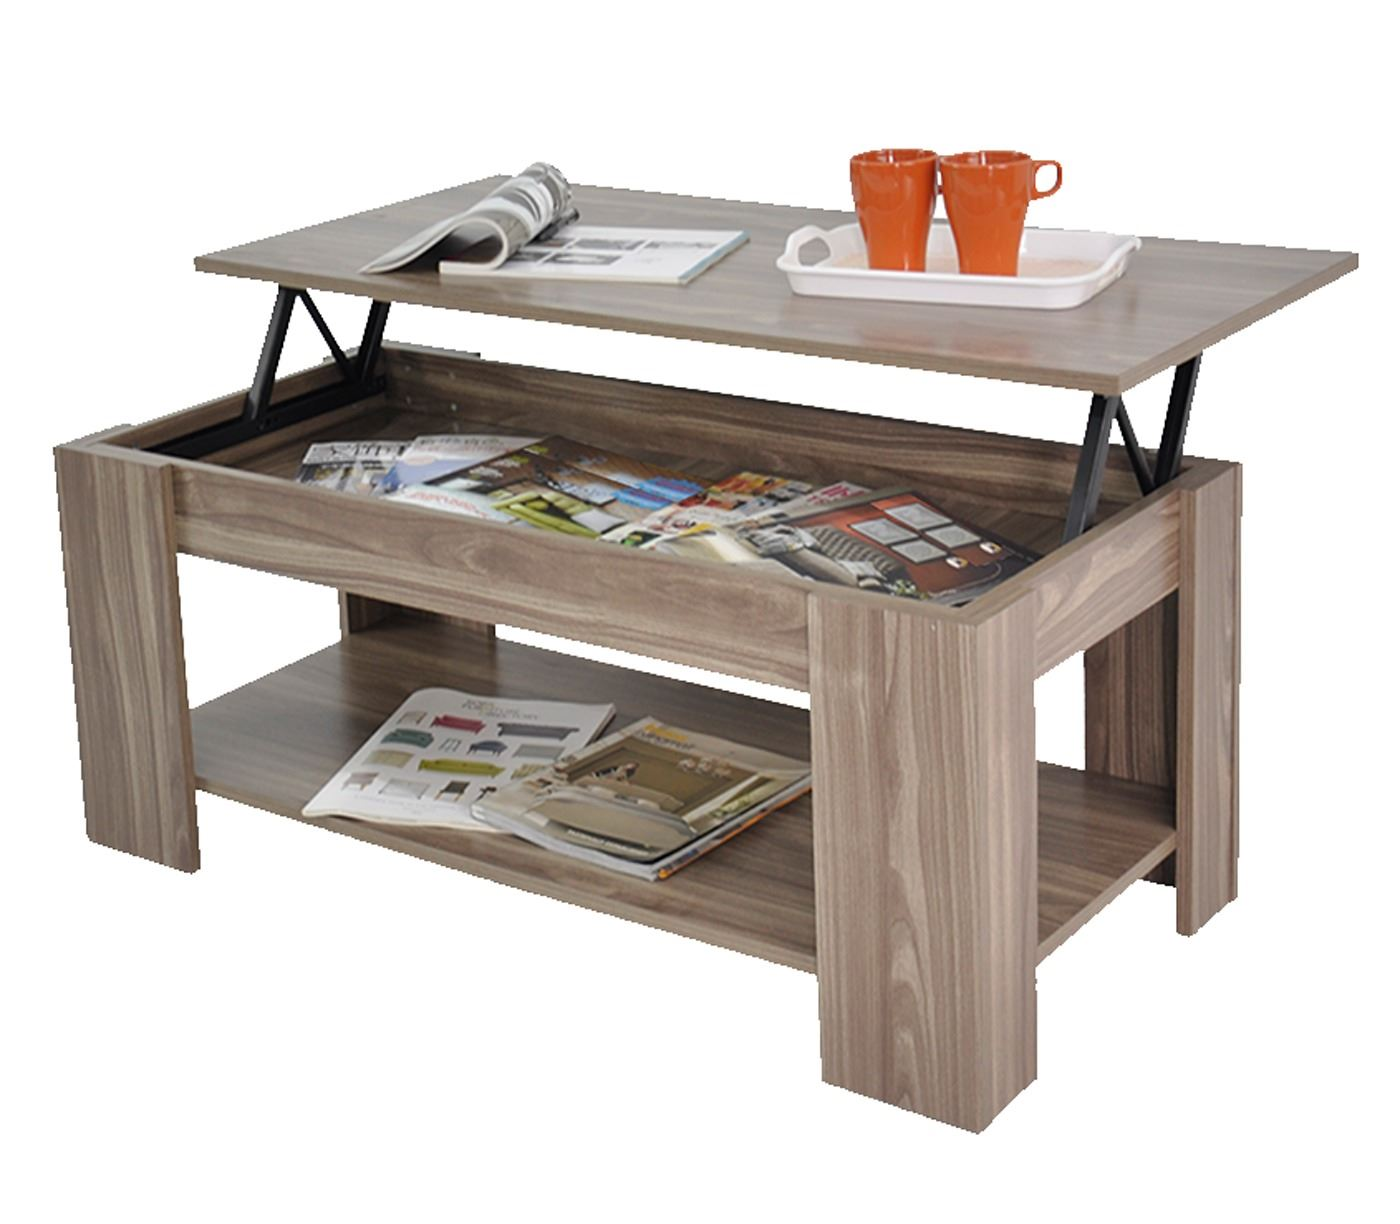 Stephanie storage large solid lift up coffee table walnut wood shelf ebay Coffee table with shelf